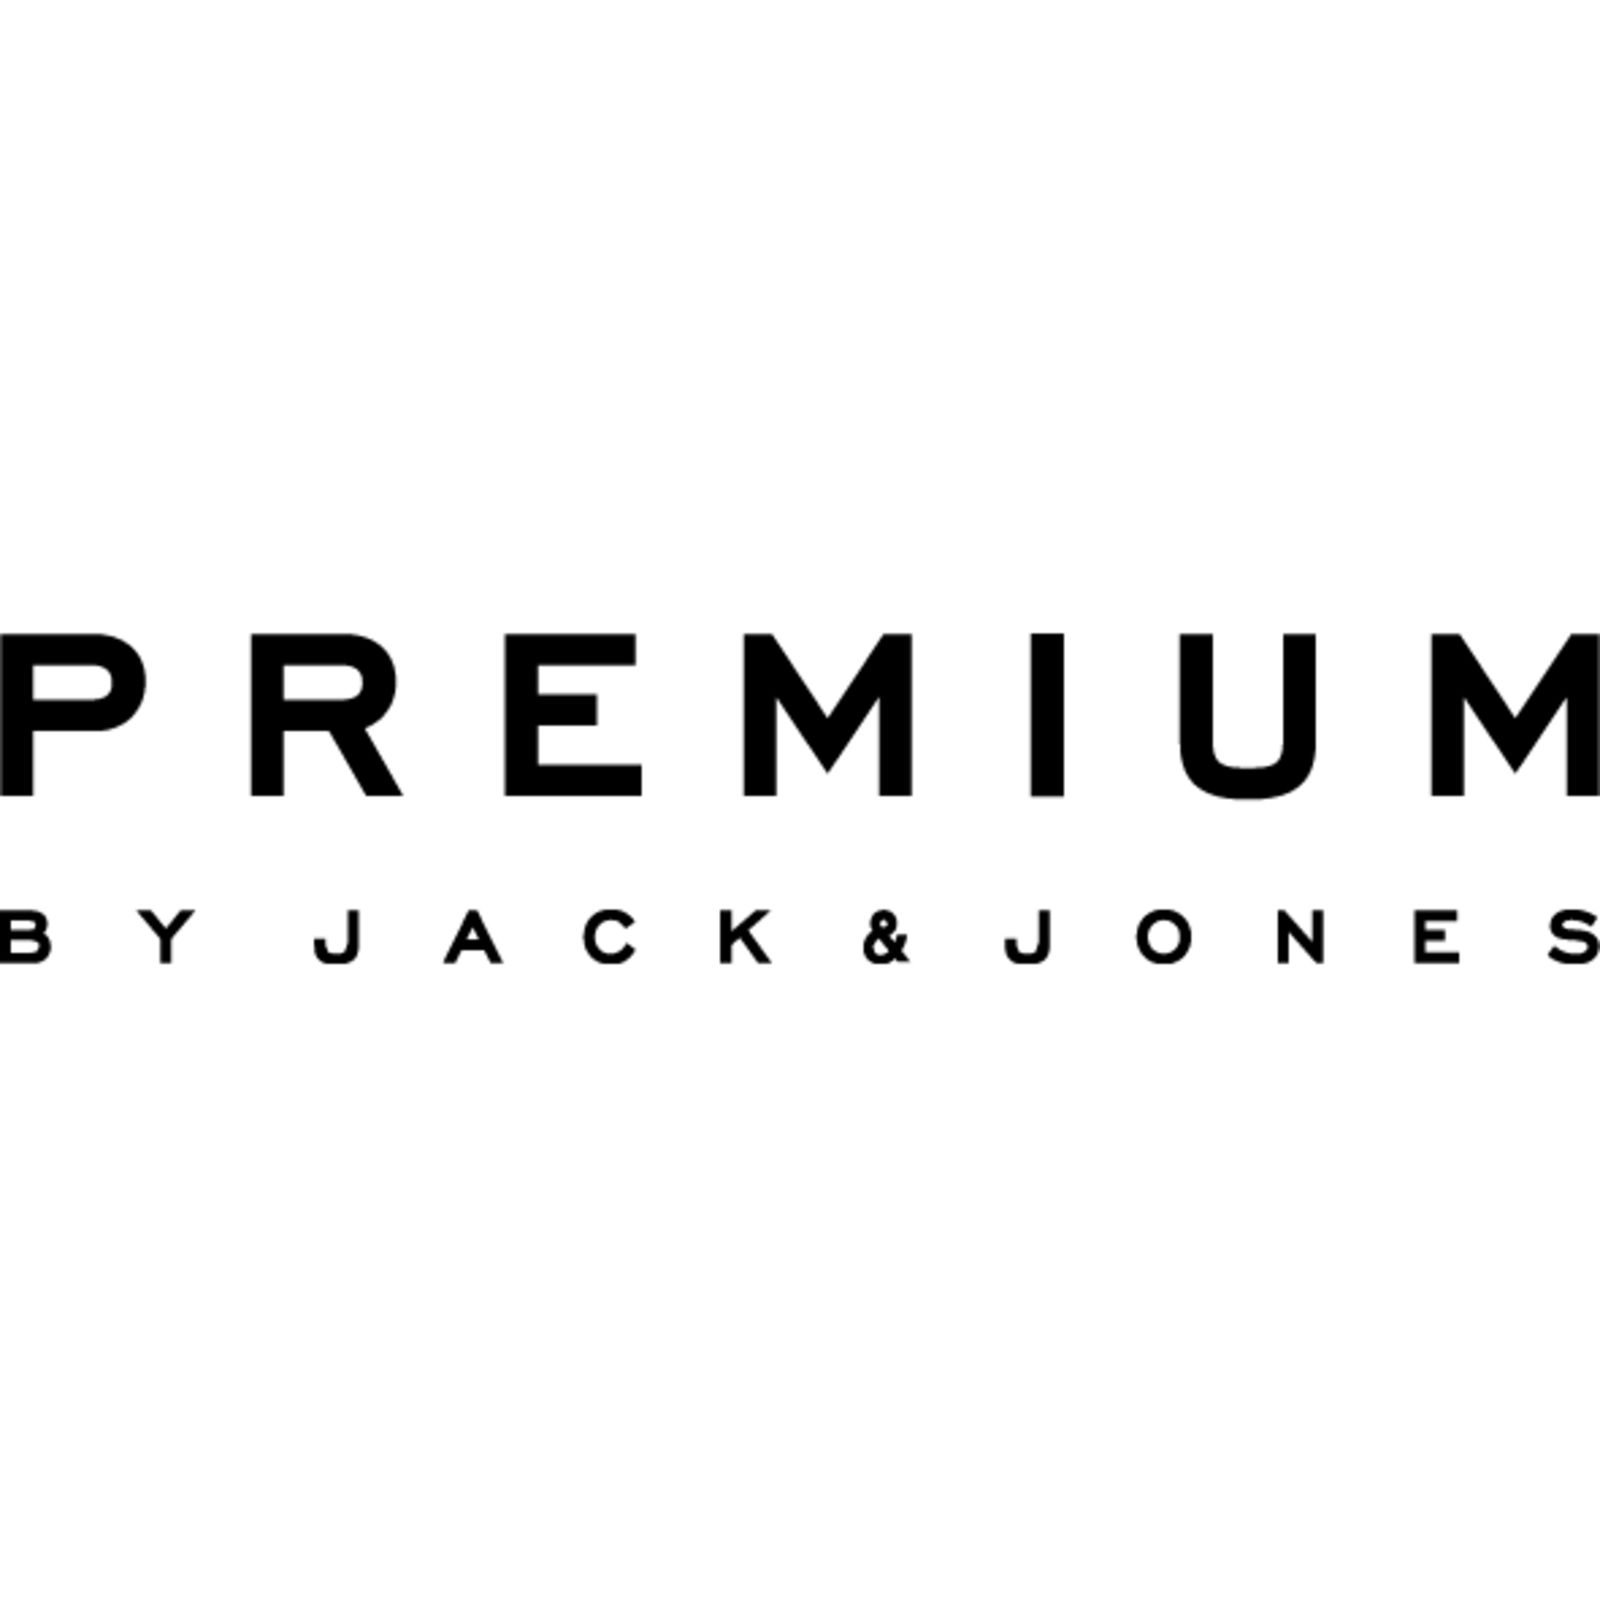 PREMIUM by JACK & JONES (Bild 1)